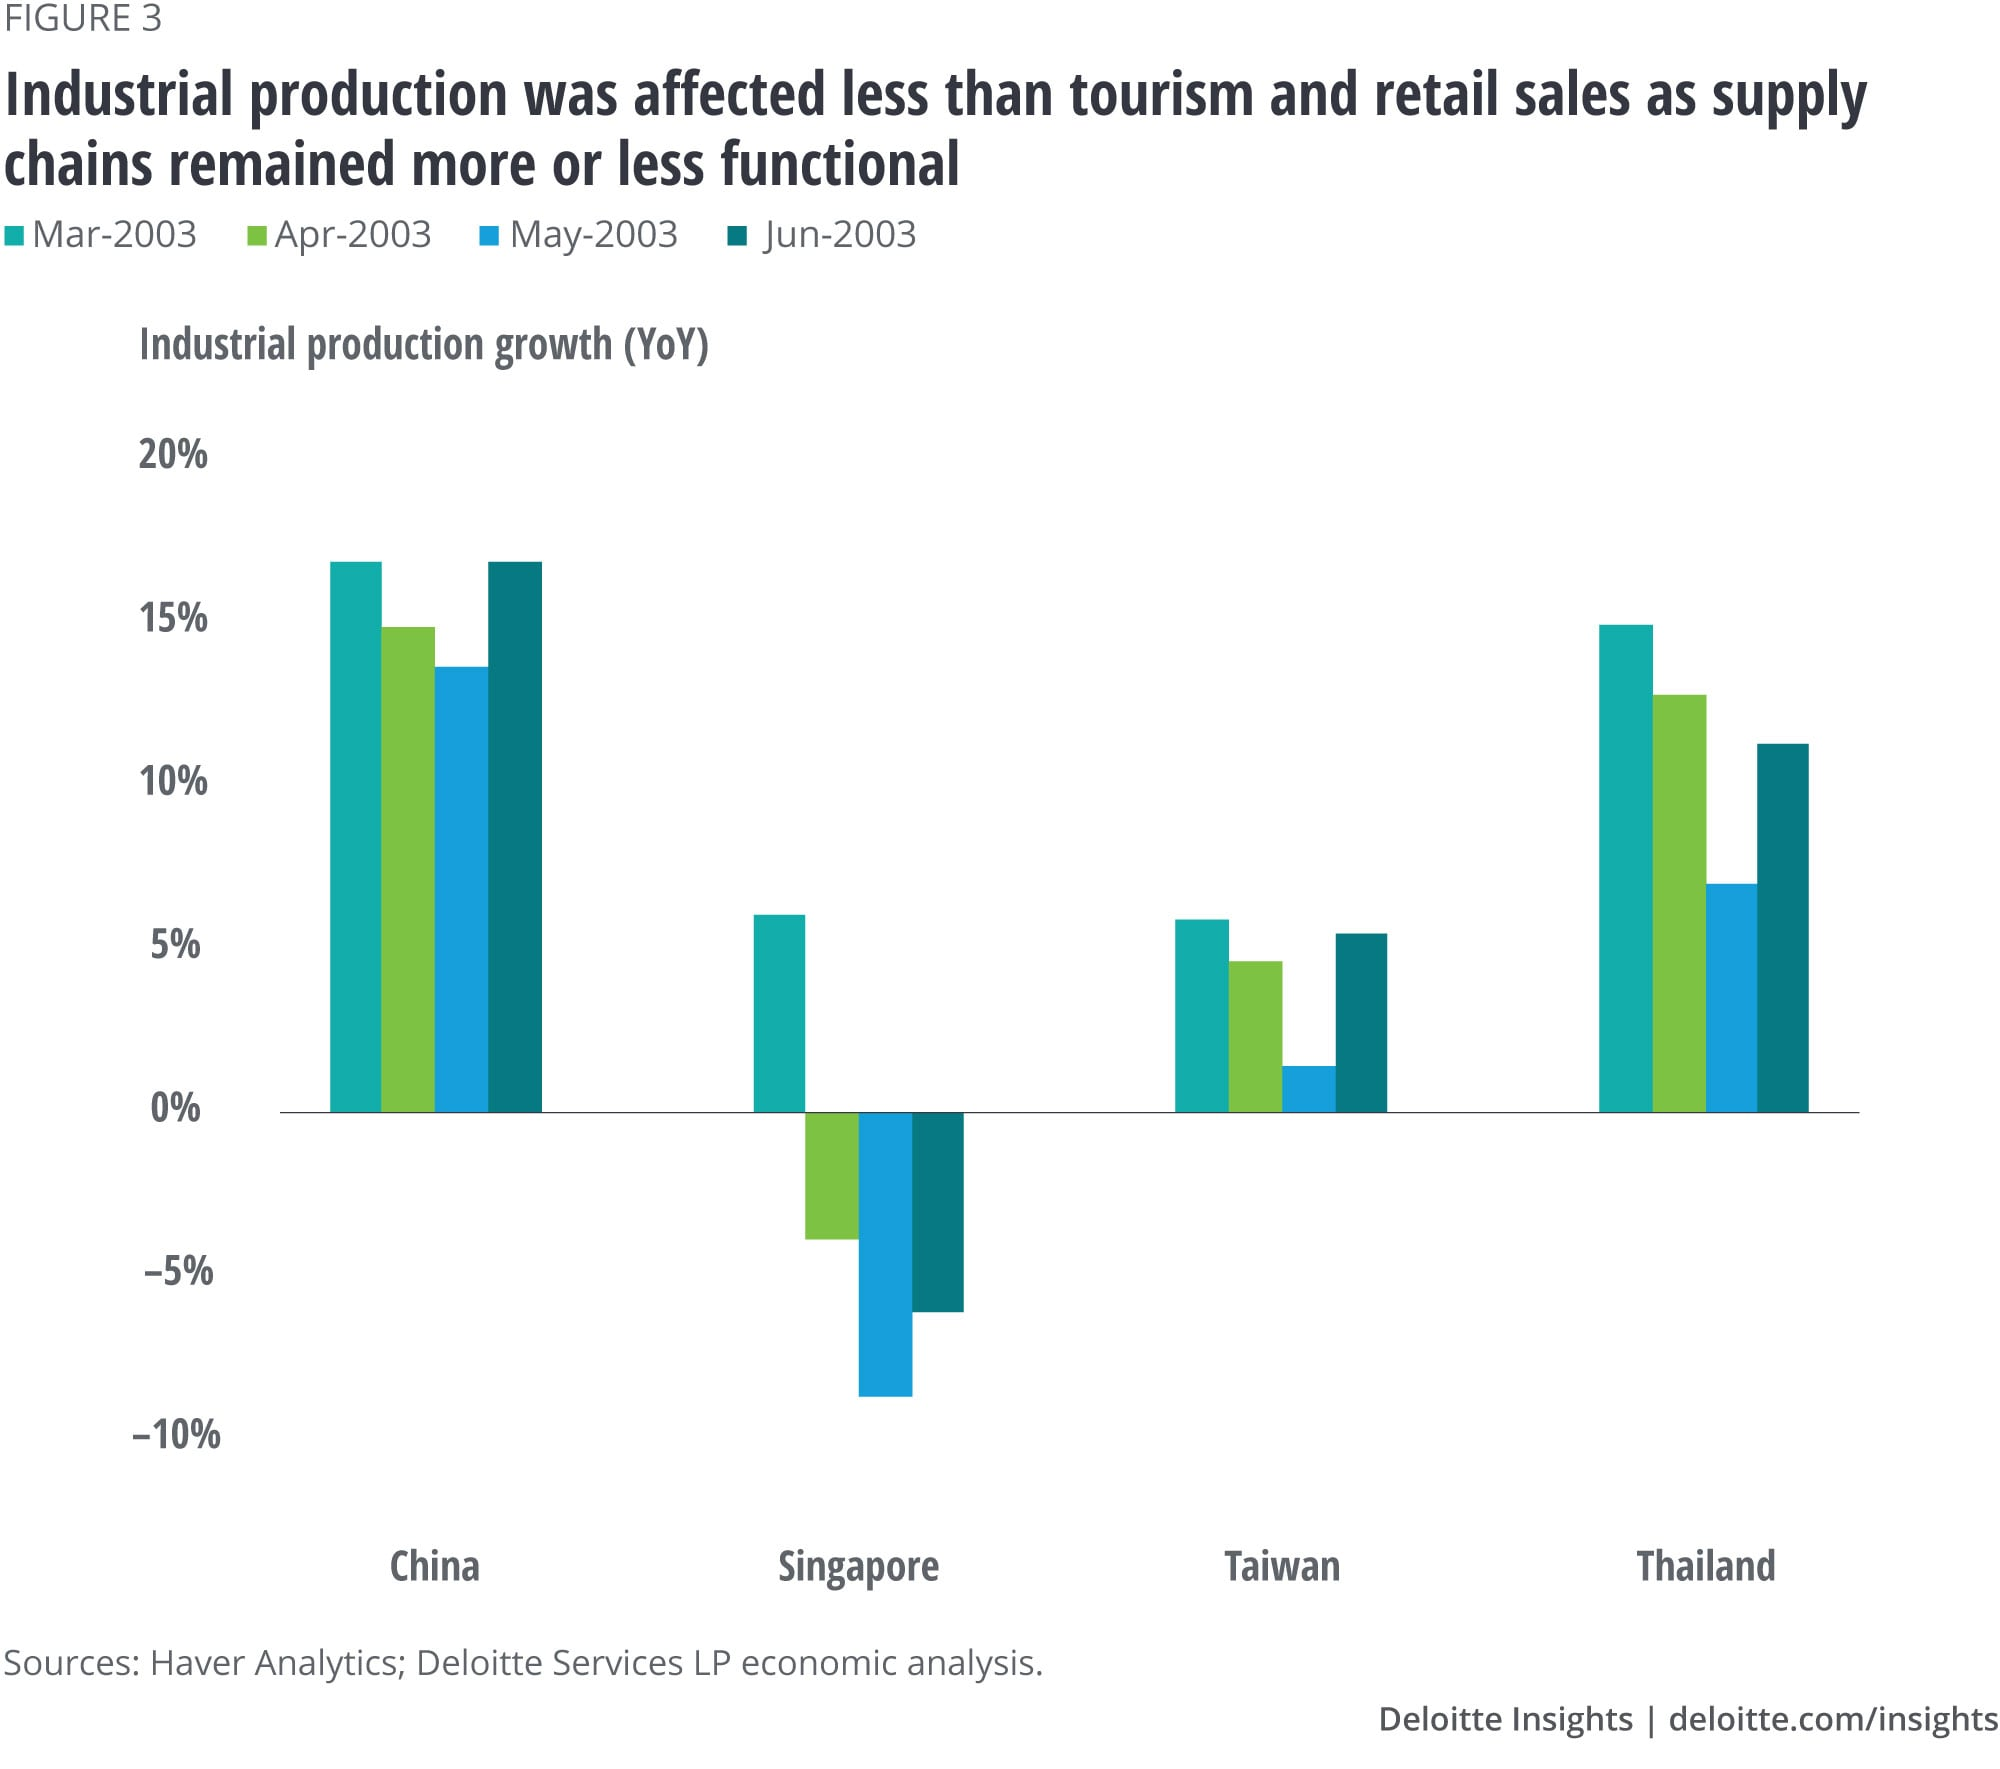 Industrial production was affected less than tourism and retail sales as supply chains remained more or less functional